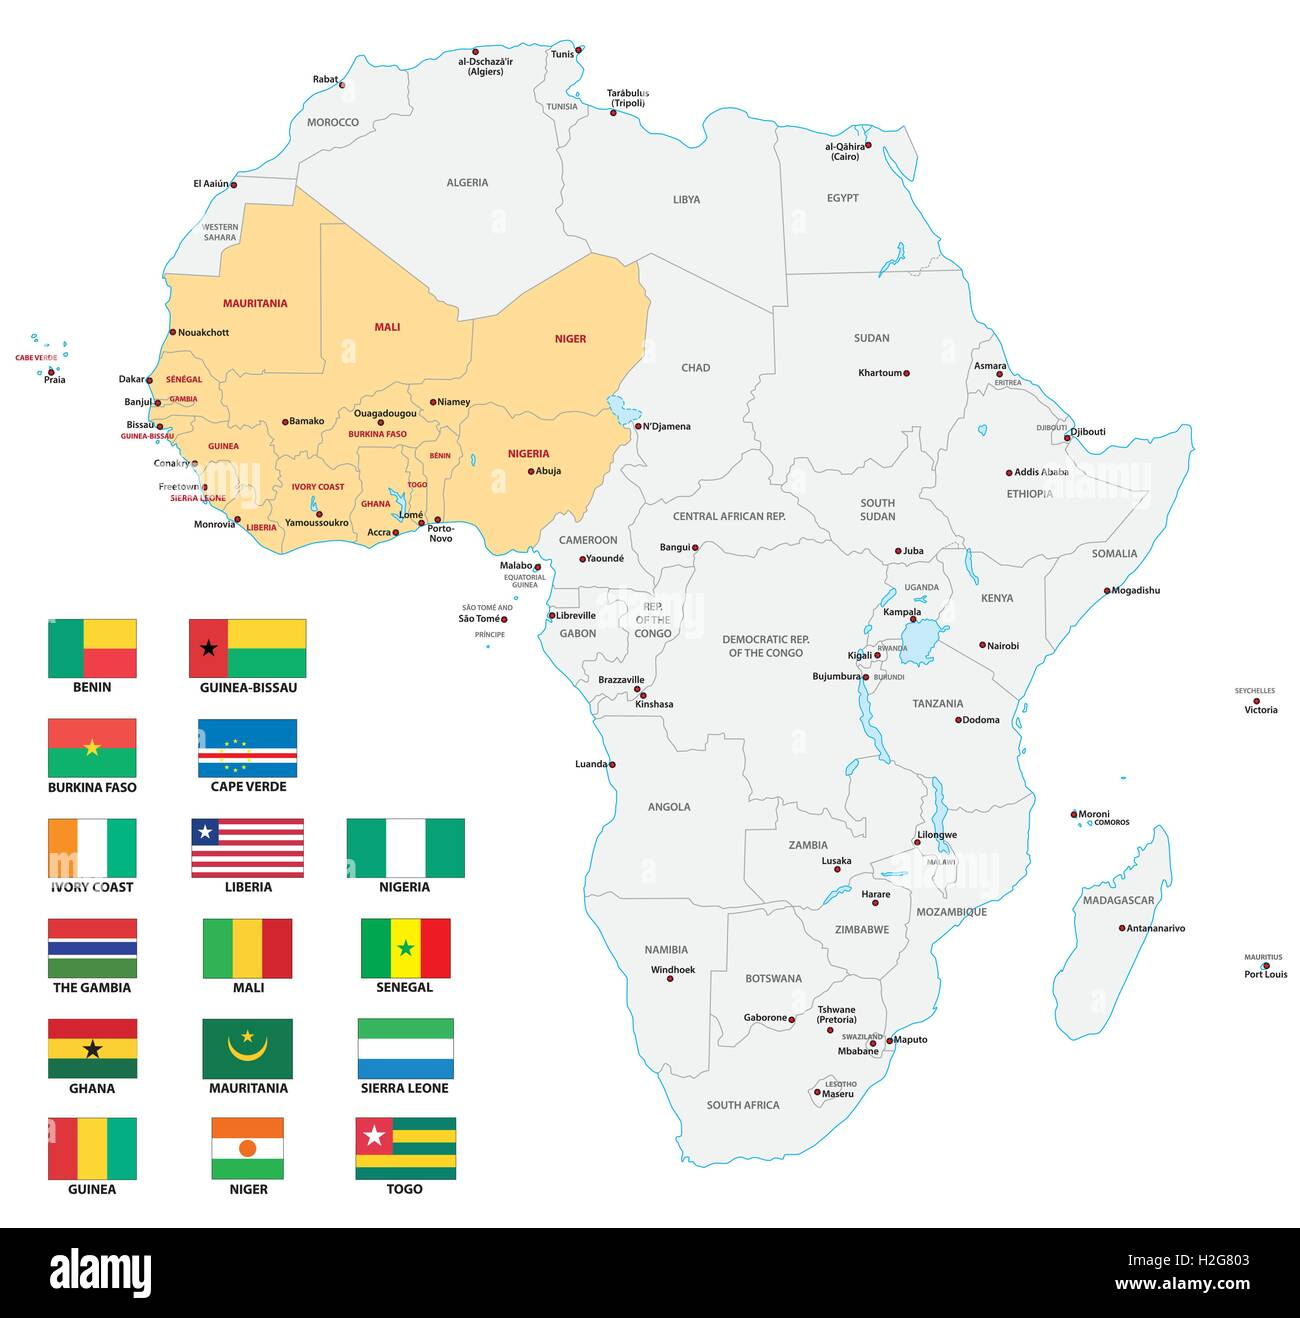 Africa Occidentale Cartina.Africa Occidentale Mappa Con Le Bandiere Illustrazione